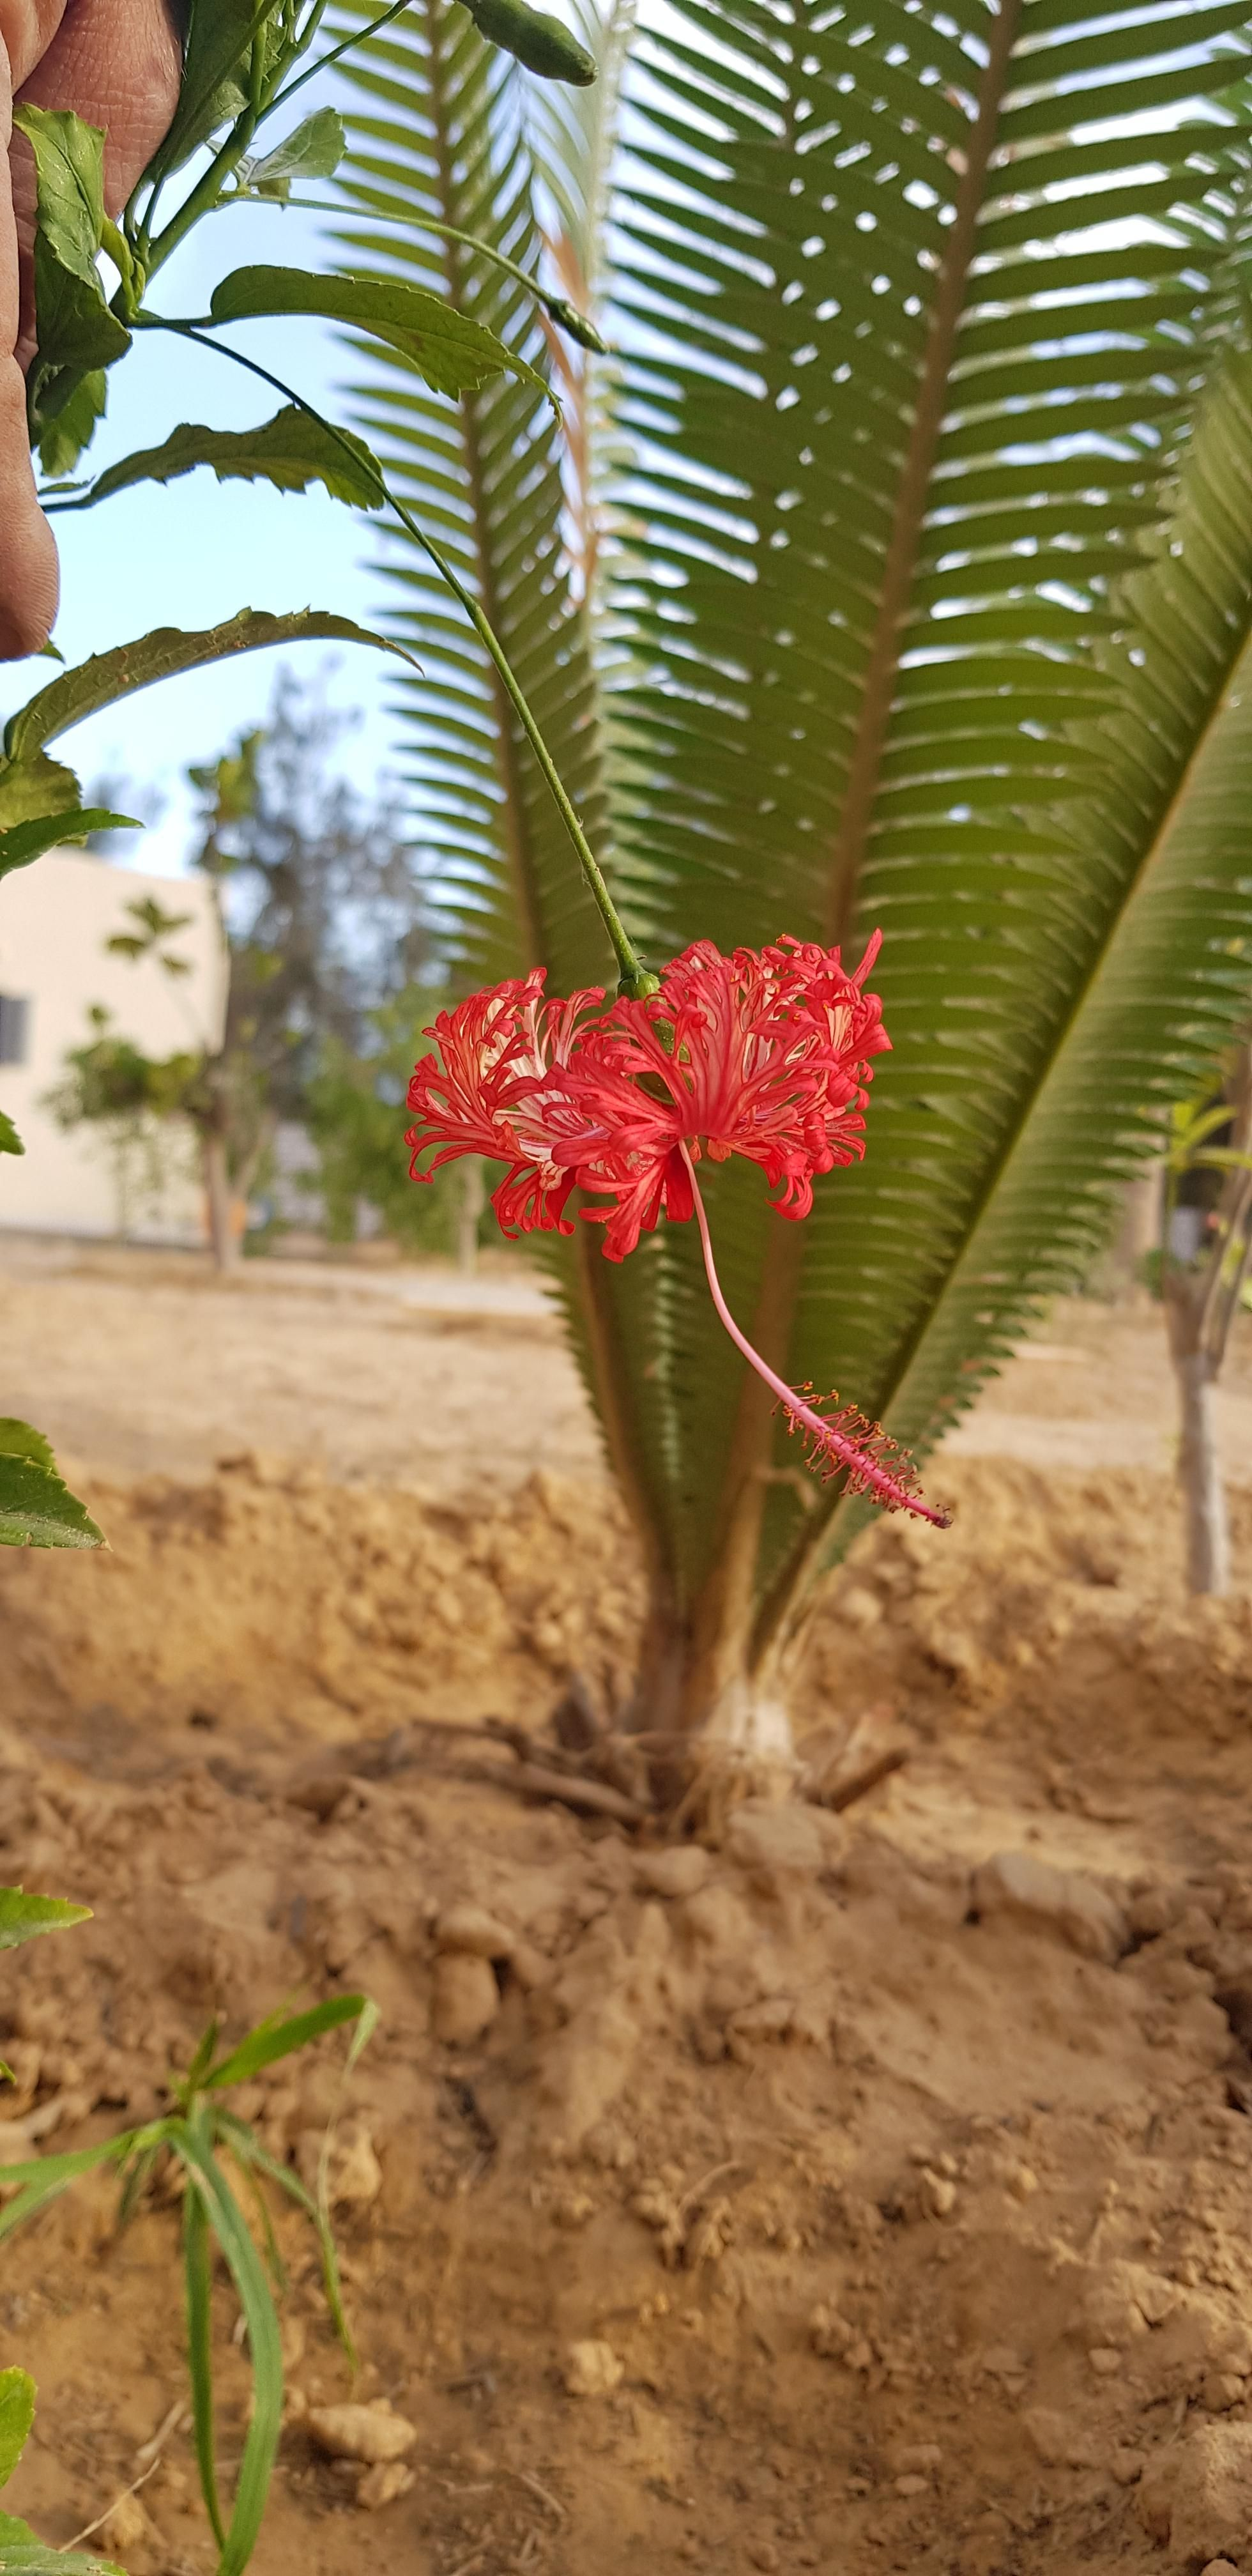 Japanese Hibiscus In Egypt Gardening Garden Diy Home Flowers